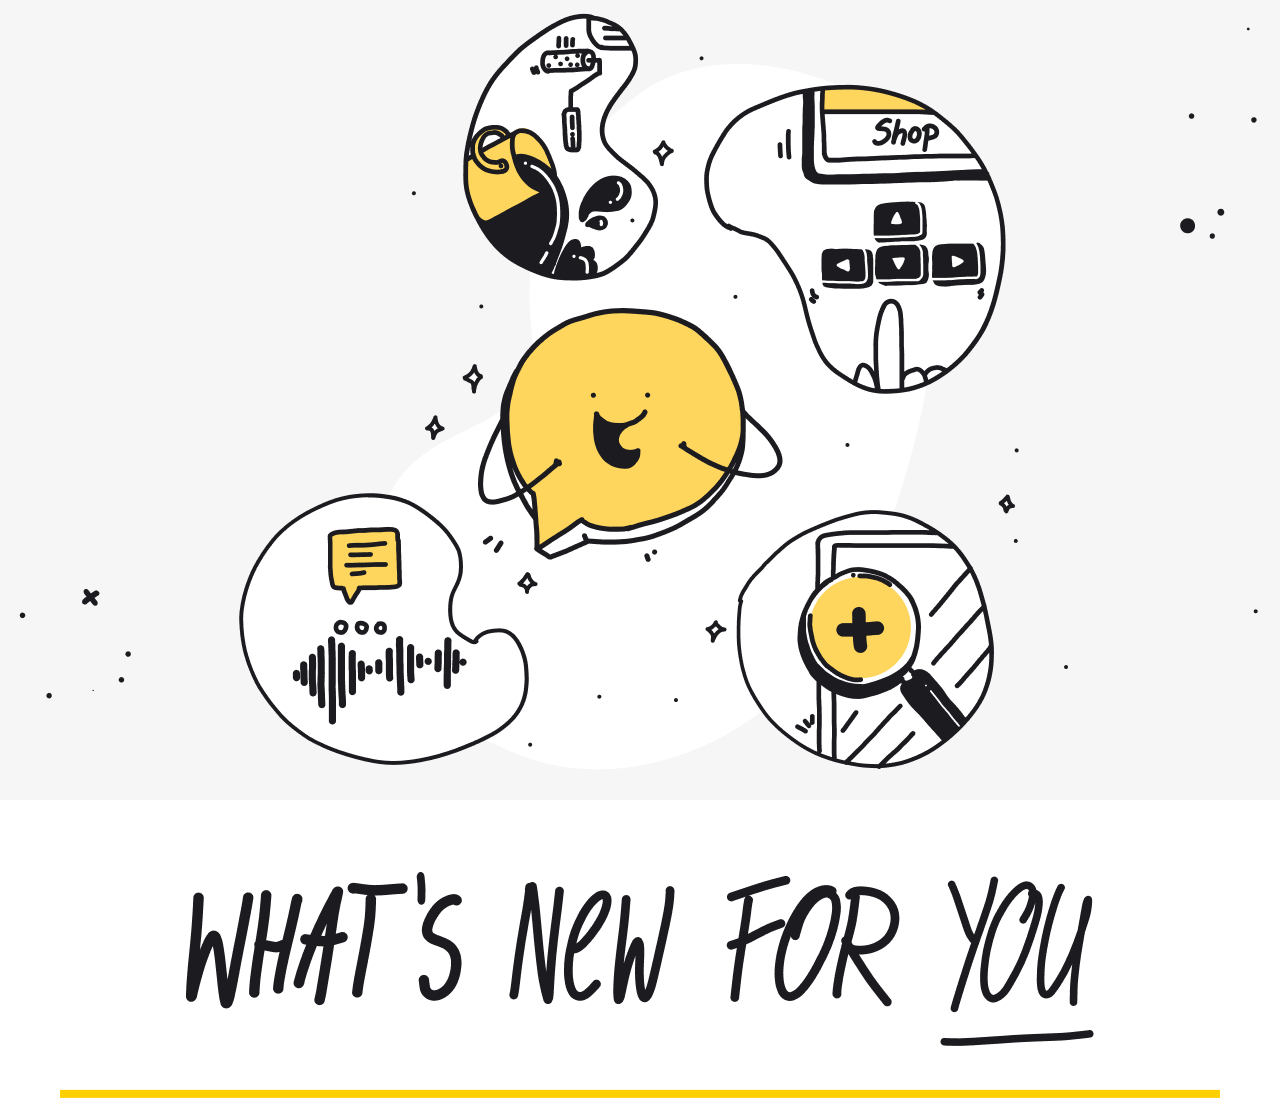 What's new for you